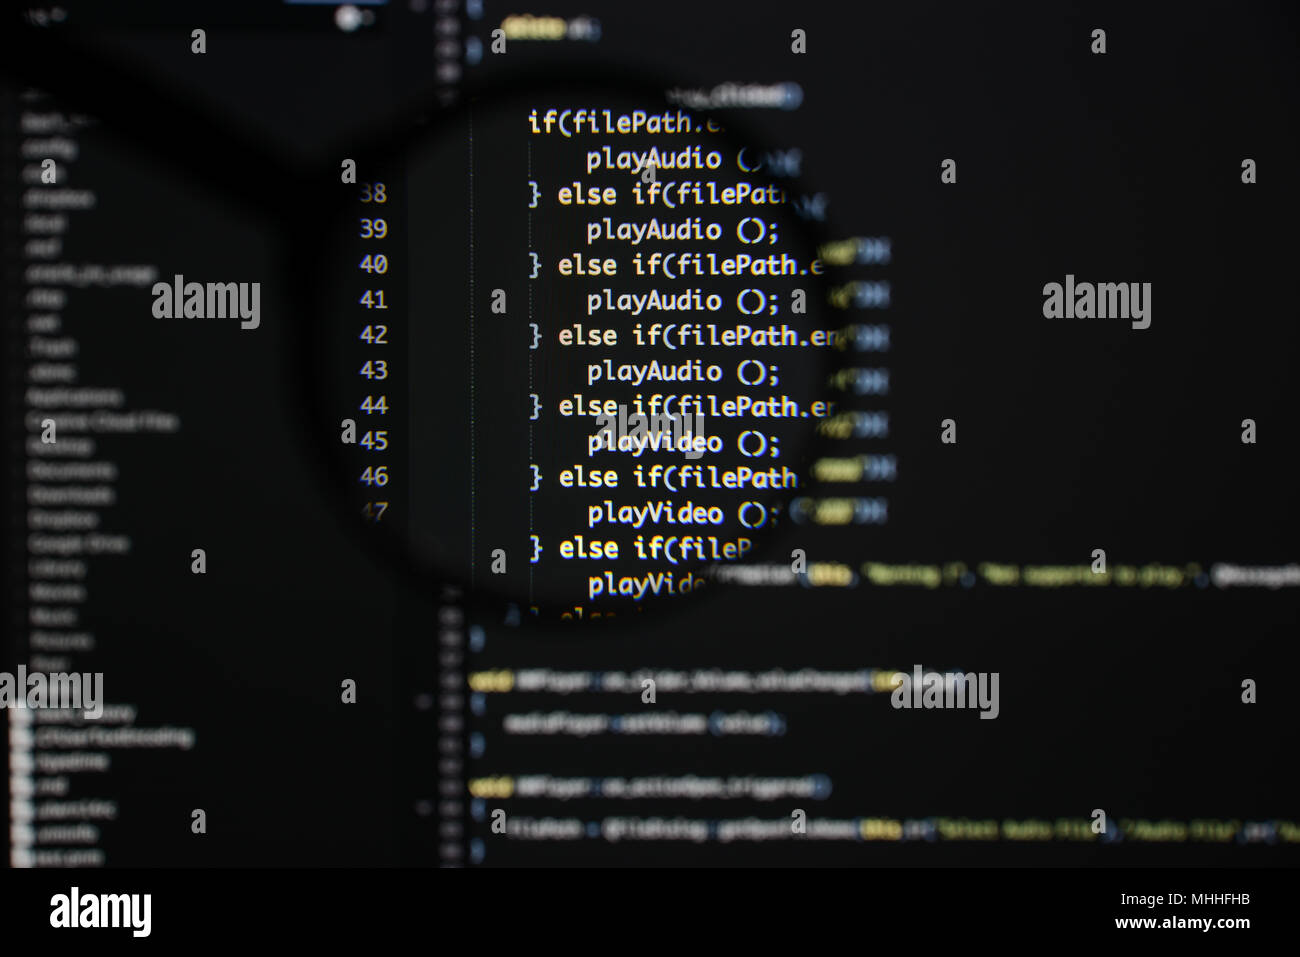 Real c / c++ code developing screen. Programing workflow abstract algorithm concept. Lines of c / c++ code visible under magnifying lens. - Stock Image